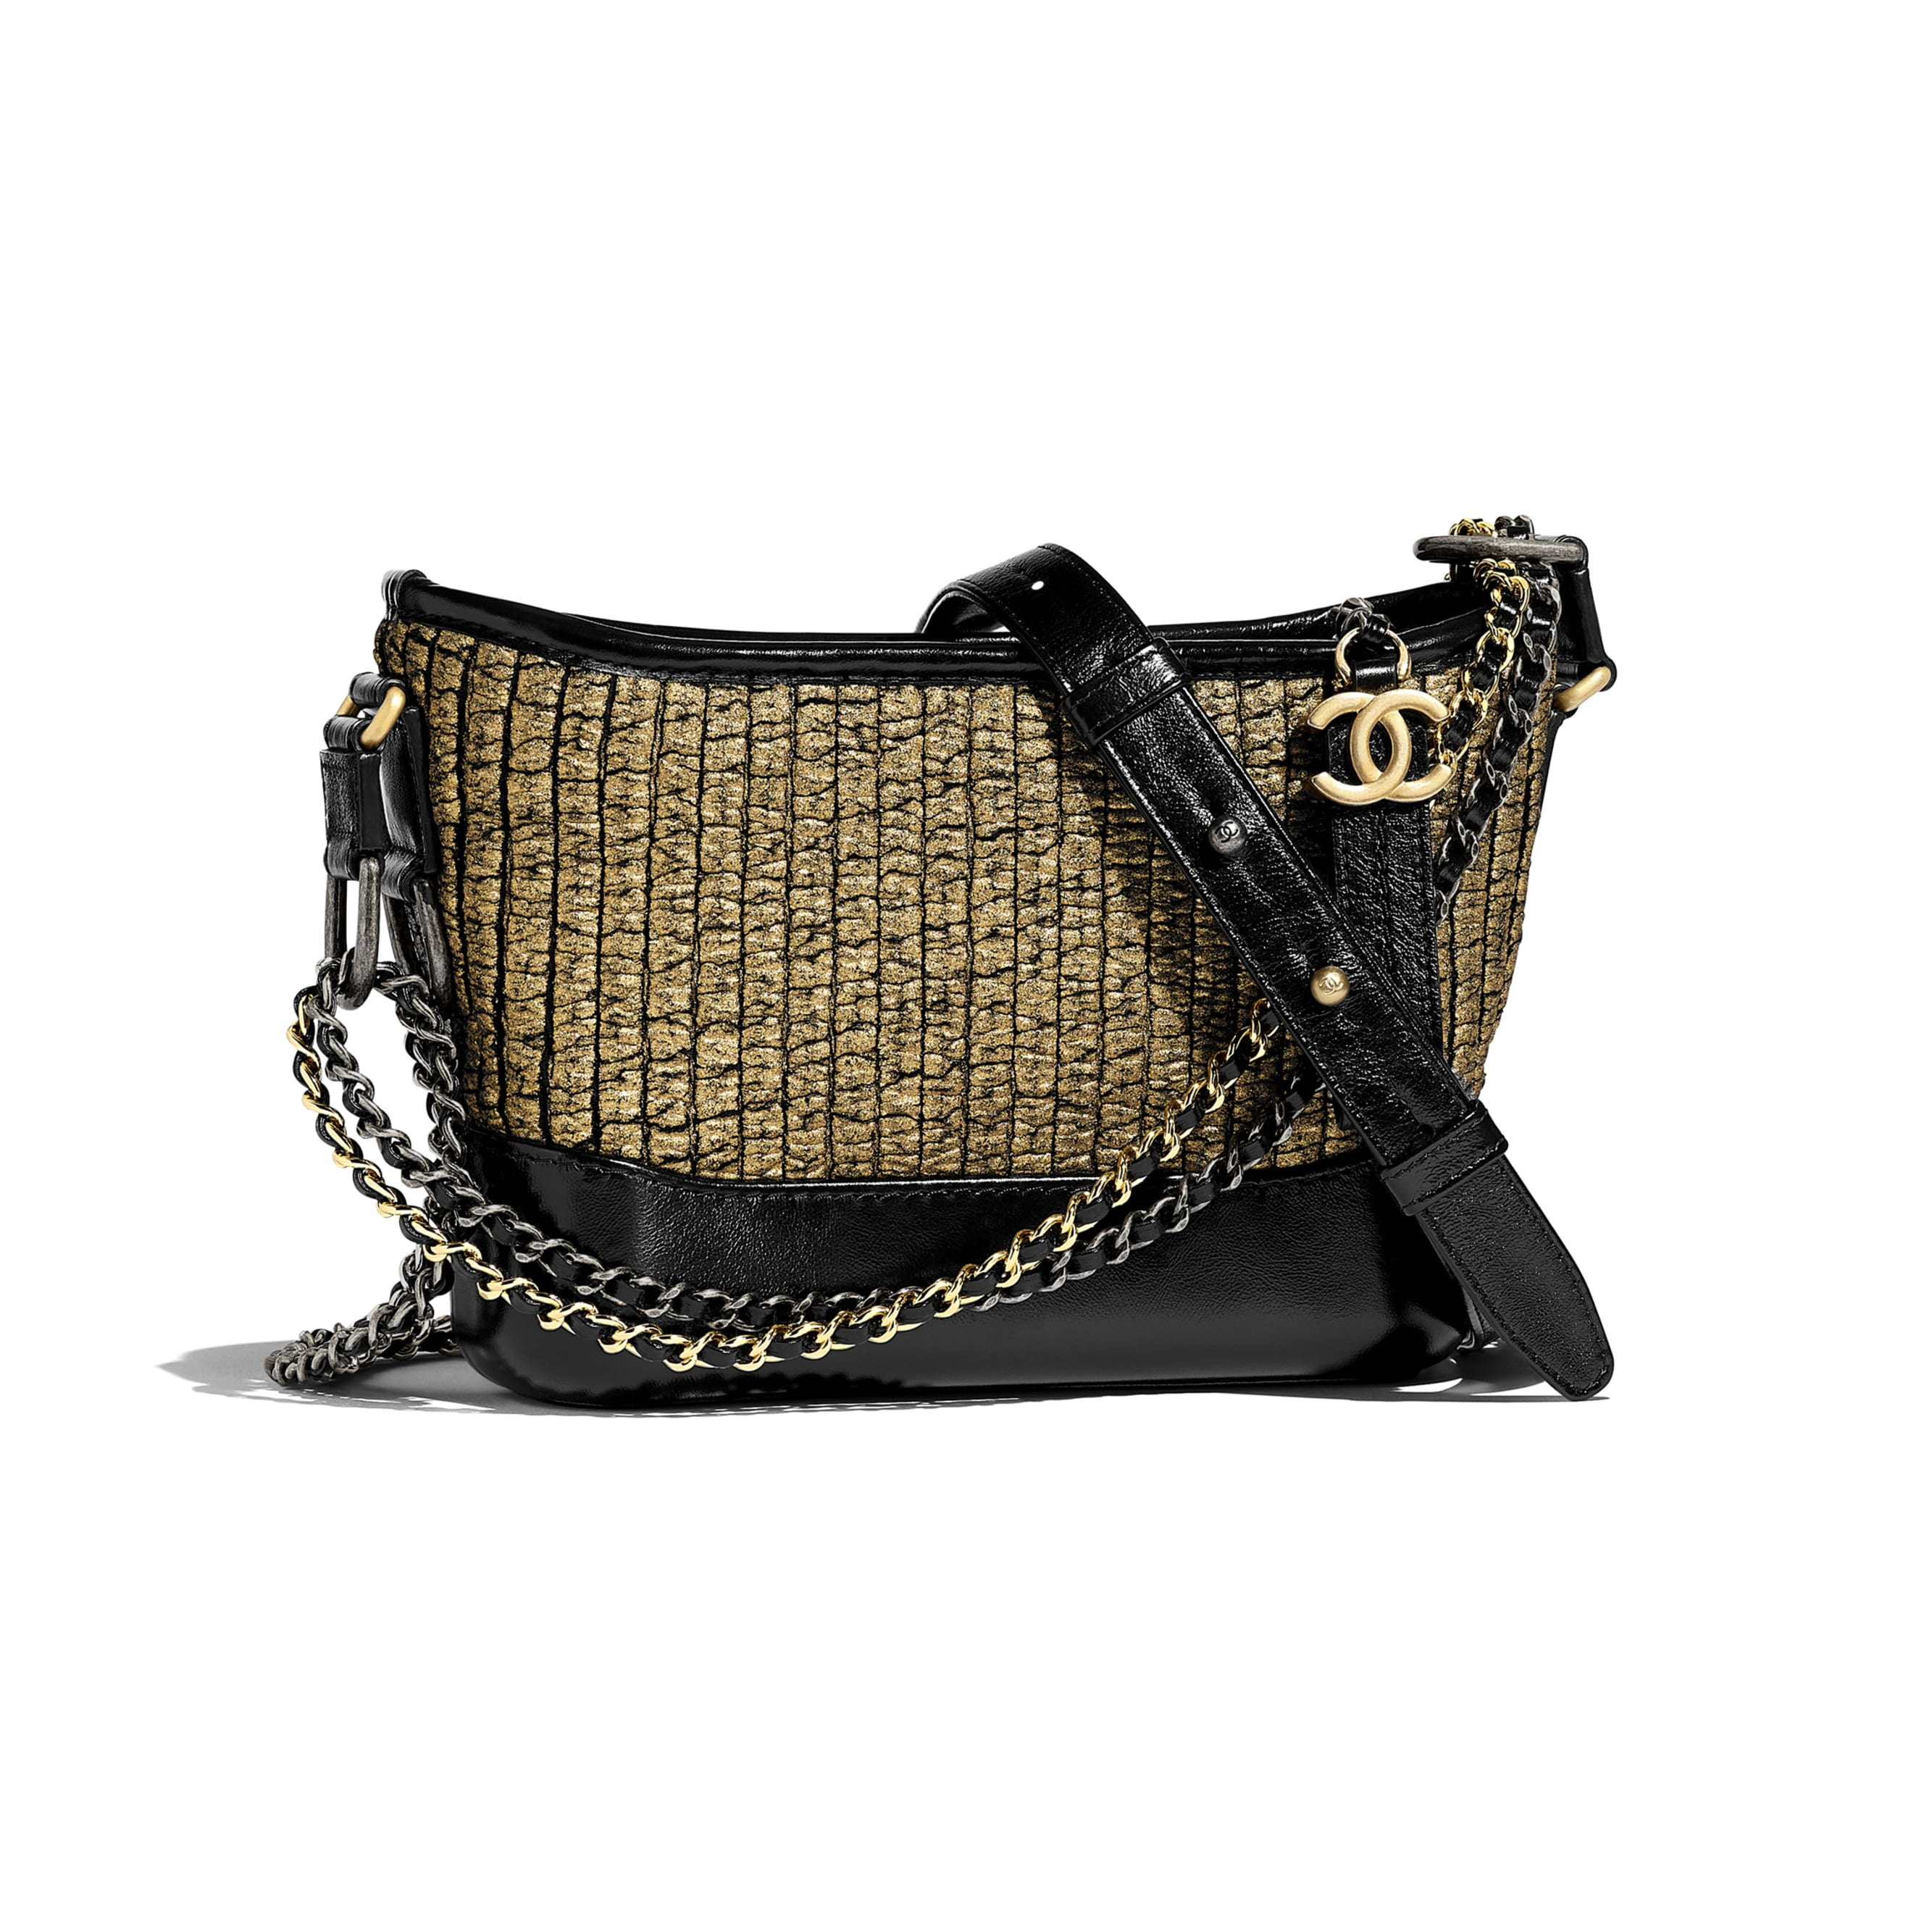 CHANEL'S GABRIELLE Small Hobo Bag - Gold & Black - Tweed, Calfskin, Gold-Tone & Silver-Tone Metal - Default view - see standard sized version